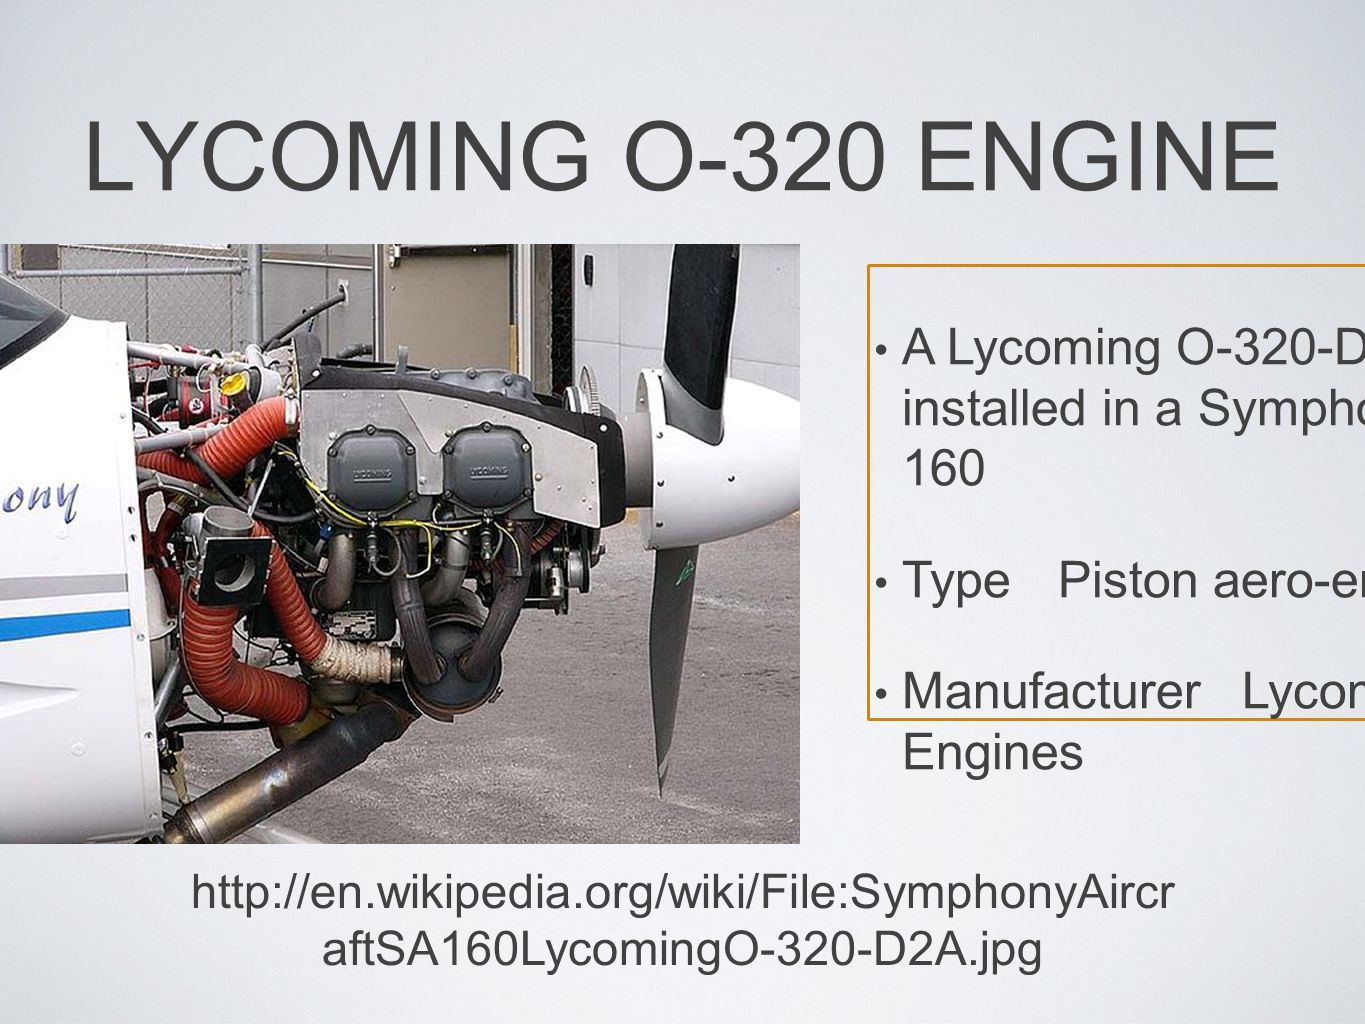 PERFORMANC E Power output: 150 hp (112 kW) Compression ratio: 7:1 Power-to-weight ratio: 1.63 lb/hp (0.99 kW/kg) RESULT With this engine, the 172-M has an optimal cruise from 131 mph (211 km/h) TAS.